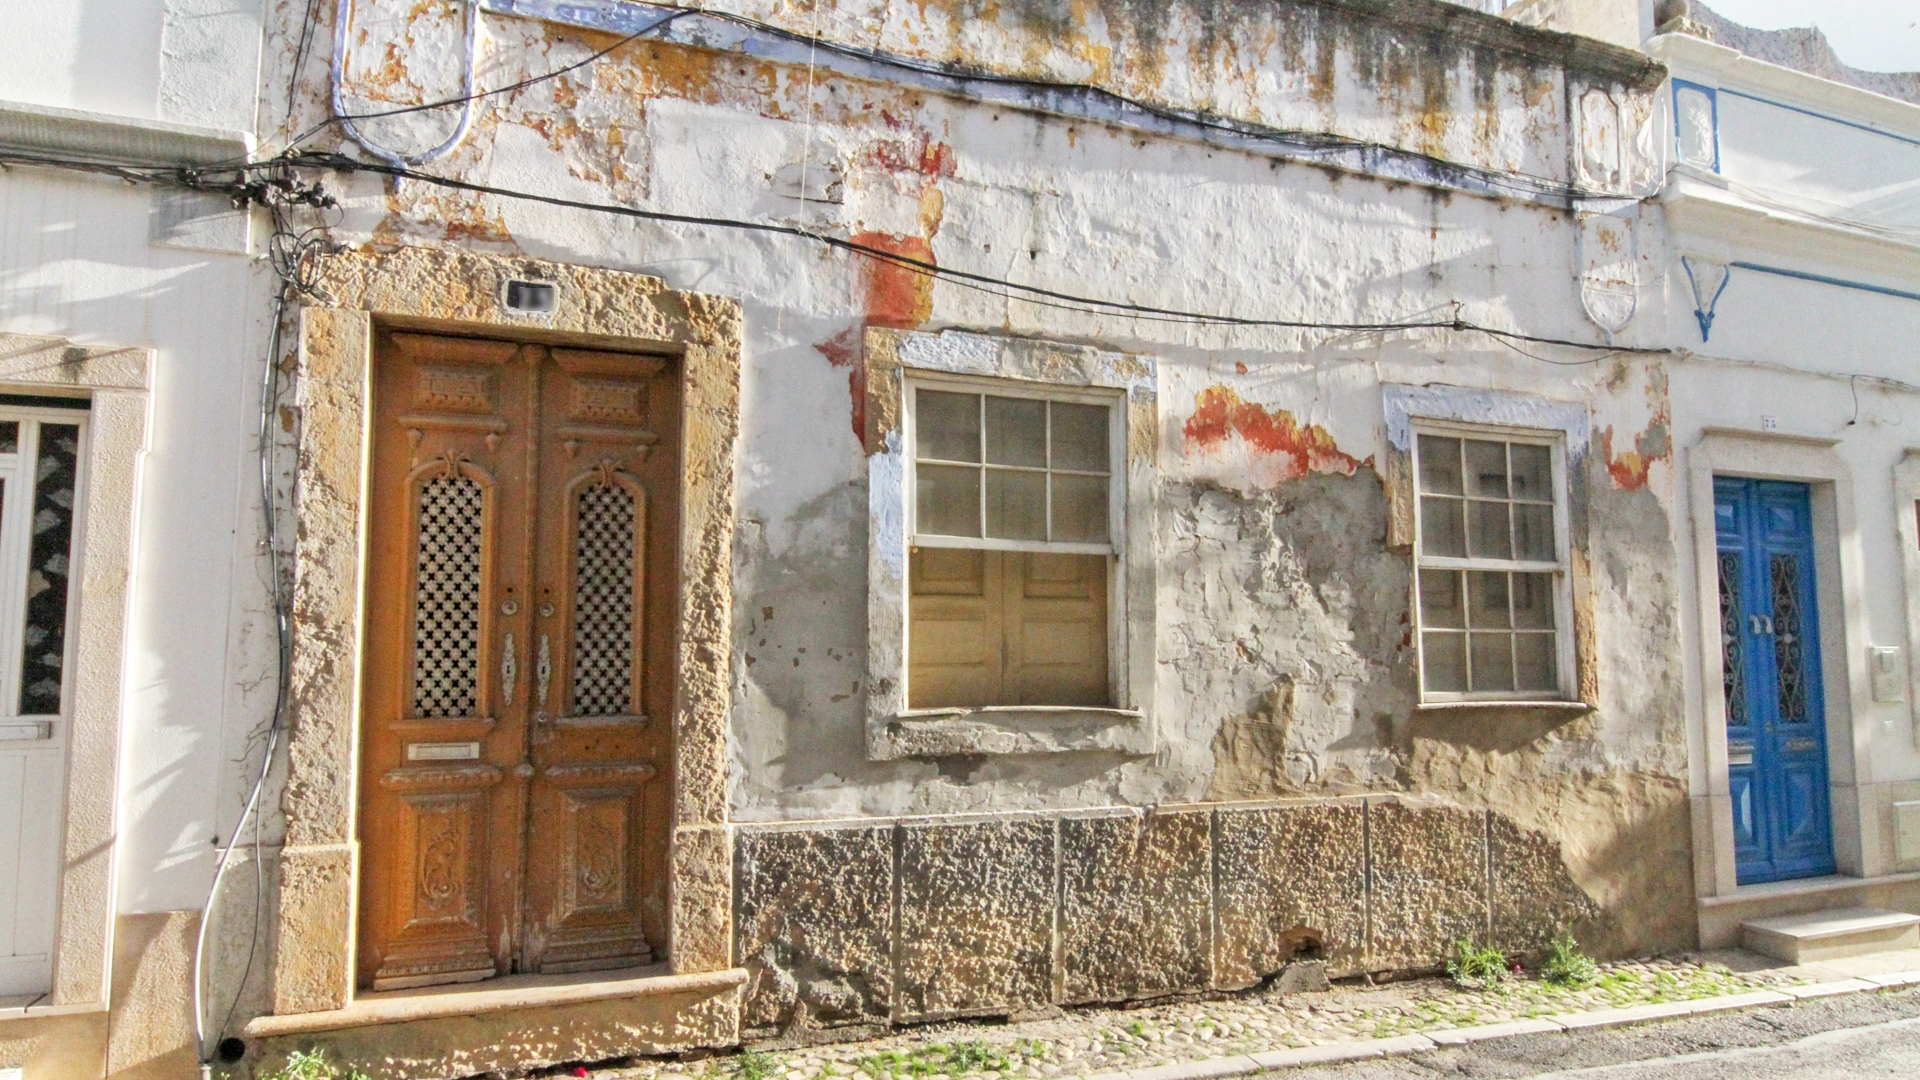 Large old house in the city to rebuild with outdoor space, Olhão | TV1251 A large old house to refurbish and with the possibility of enlargement, well located in the city of Olhão da Restauração. Close to the historical area, but without the mandatory rules that this area implies. Possibility of expansion for tourism project such as a hostel, Boutique Hotel or another type of local accommodation (Alojamento Local).